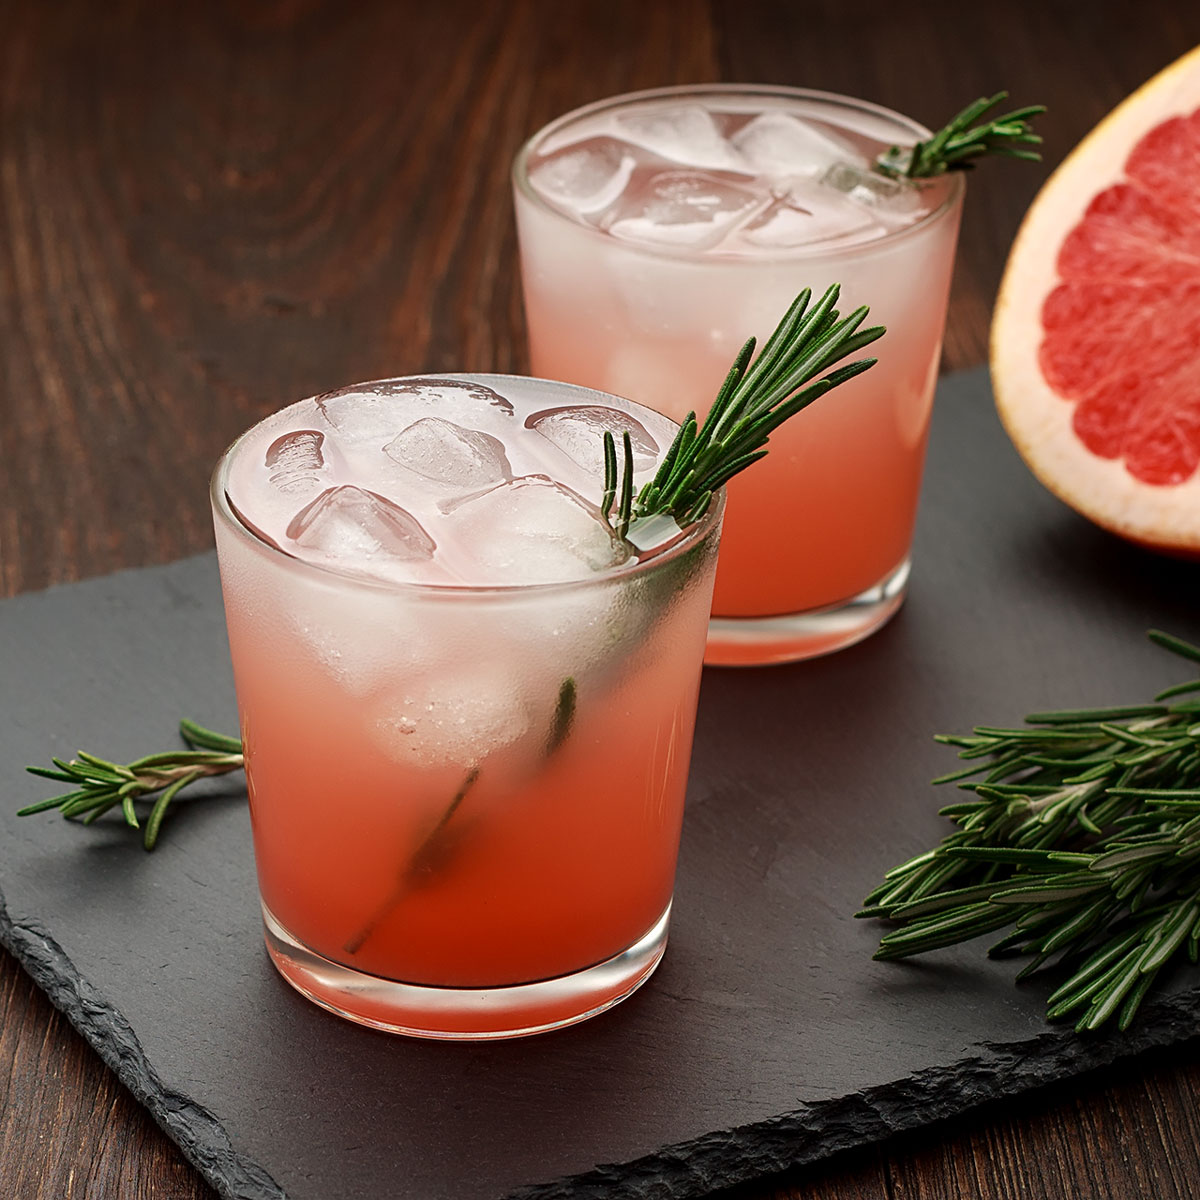 Gin and Grapefruit Punch